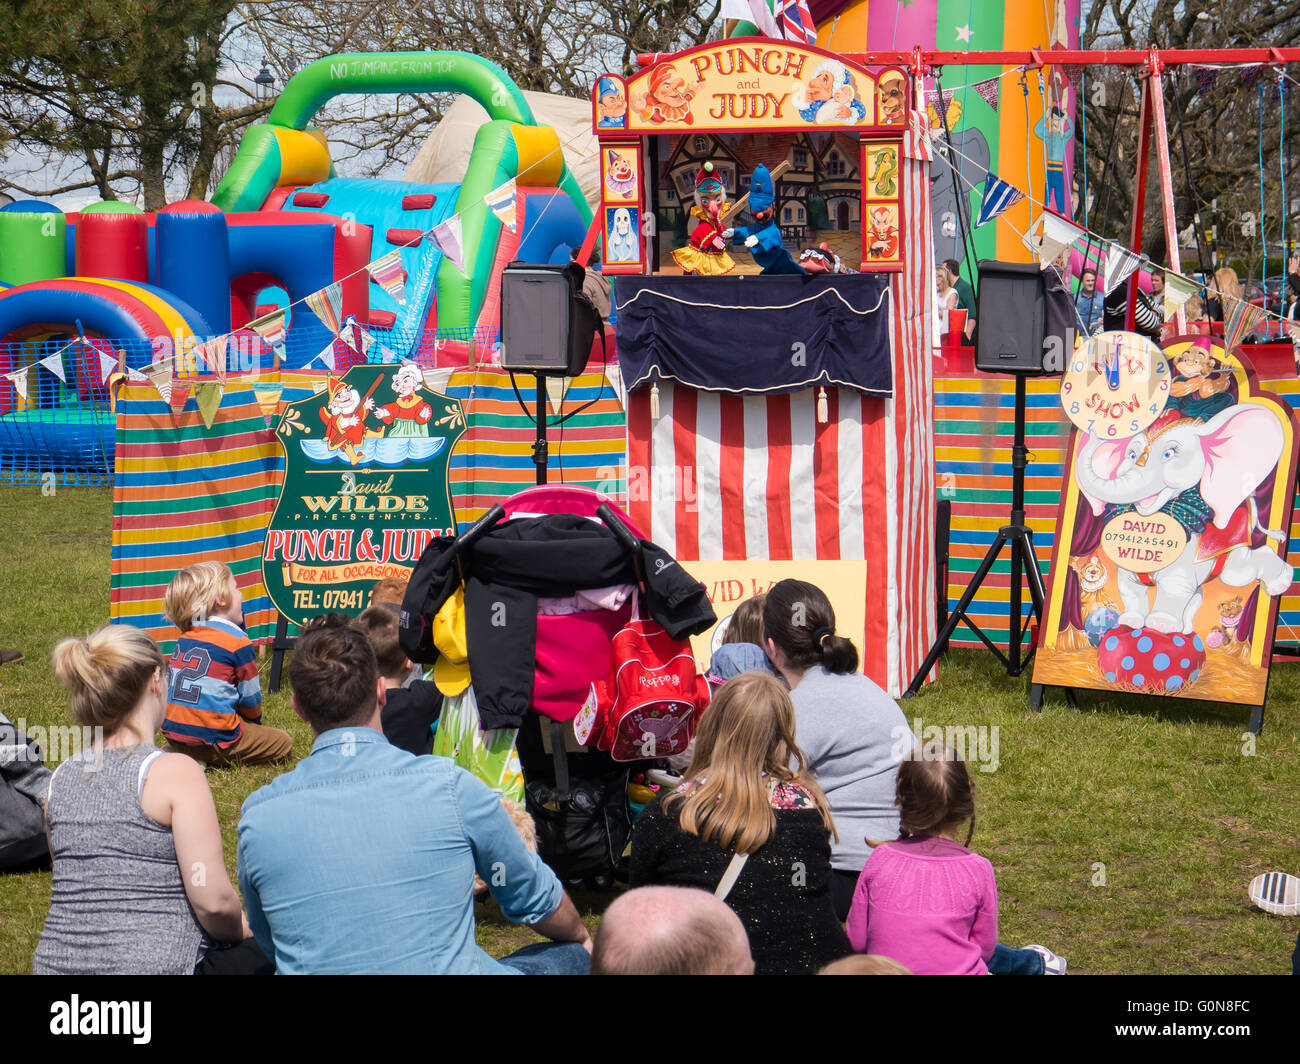 People watching a traditional Punch and Judy puppet show at a summer fair Stock Photo